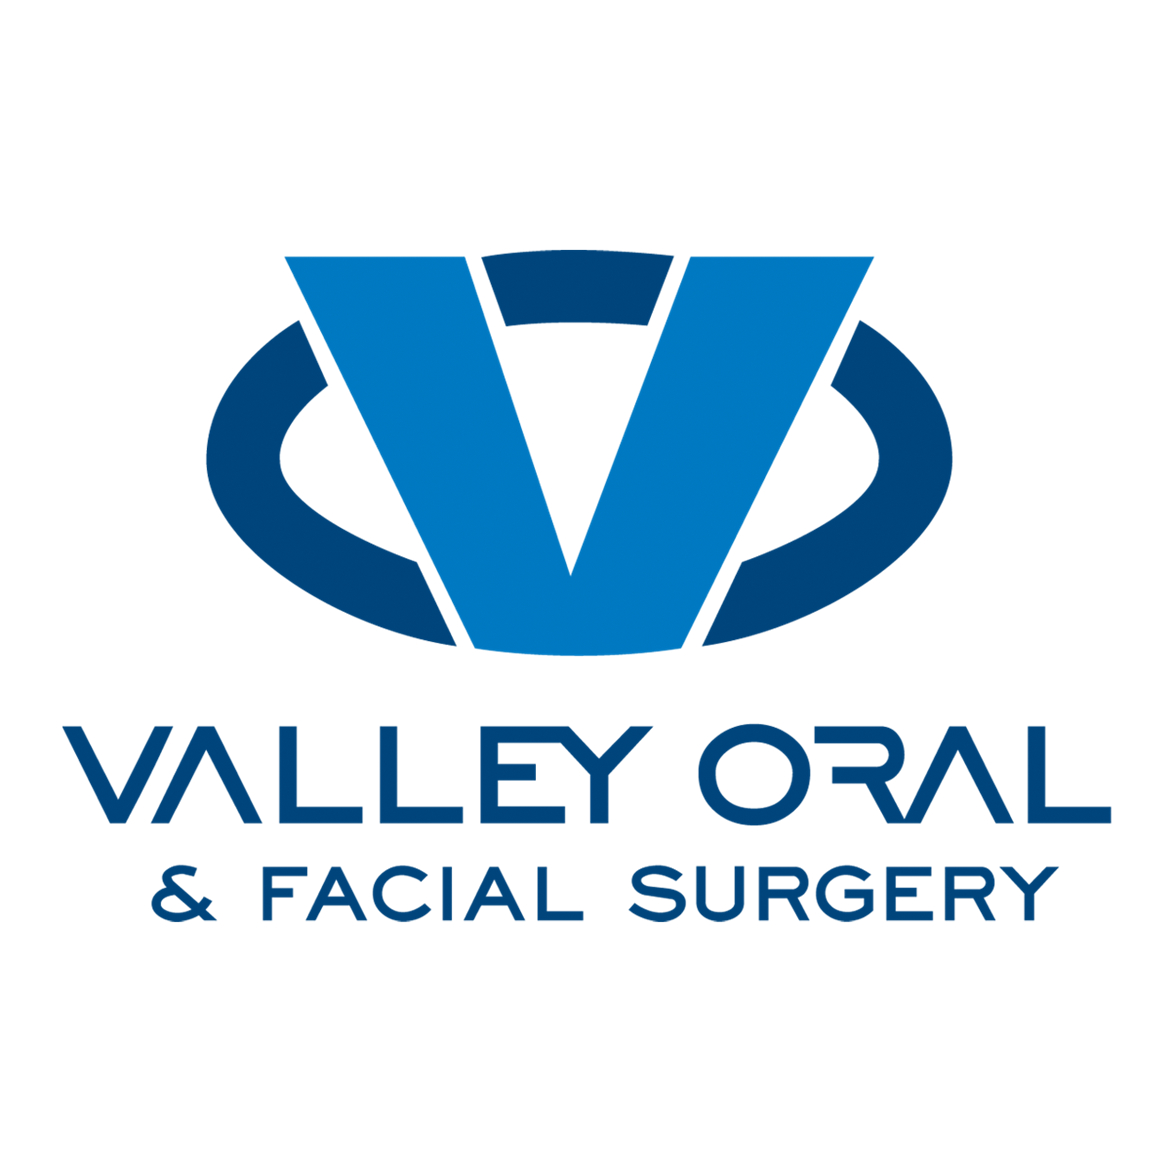 Valley Oral & Facial Surgery - ad image